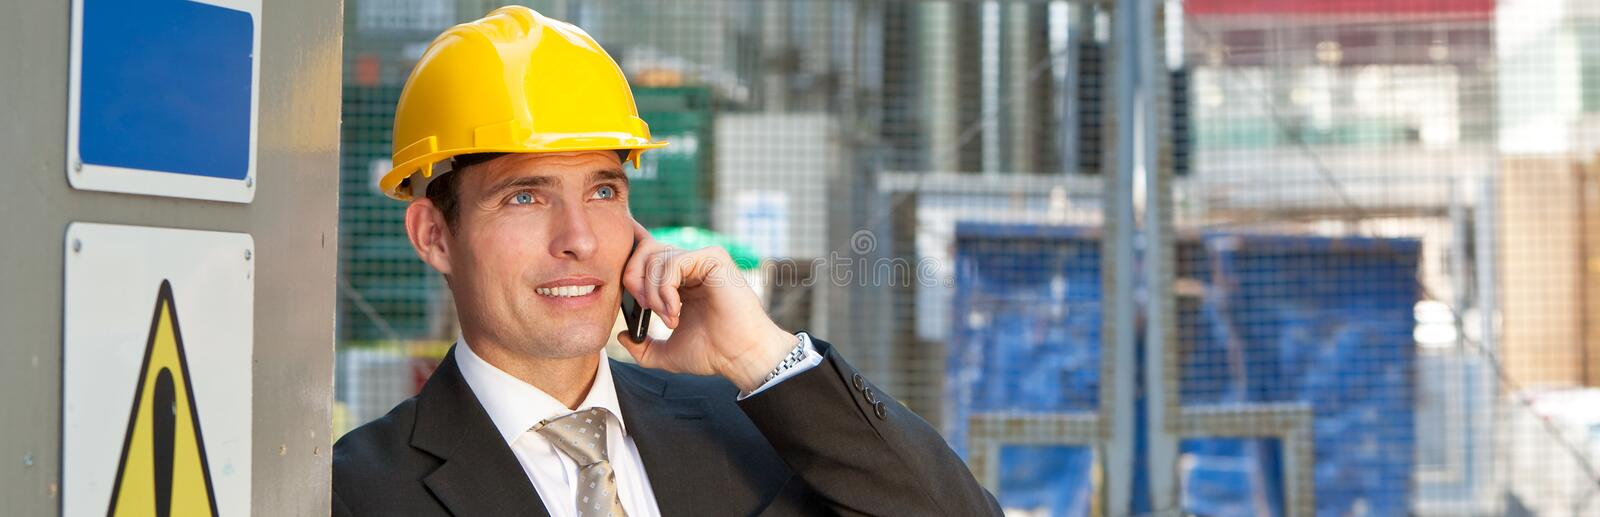 Construction Worker Builder on Building Site Talking on Phone Panorama royalty free stock image